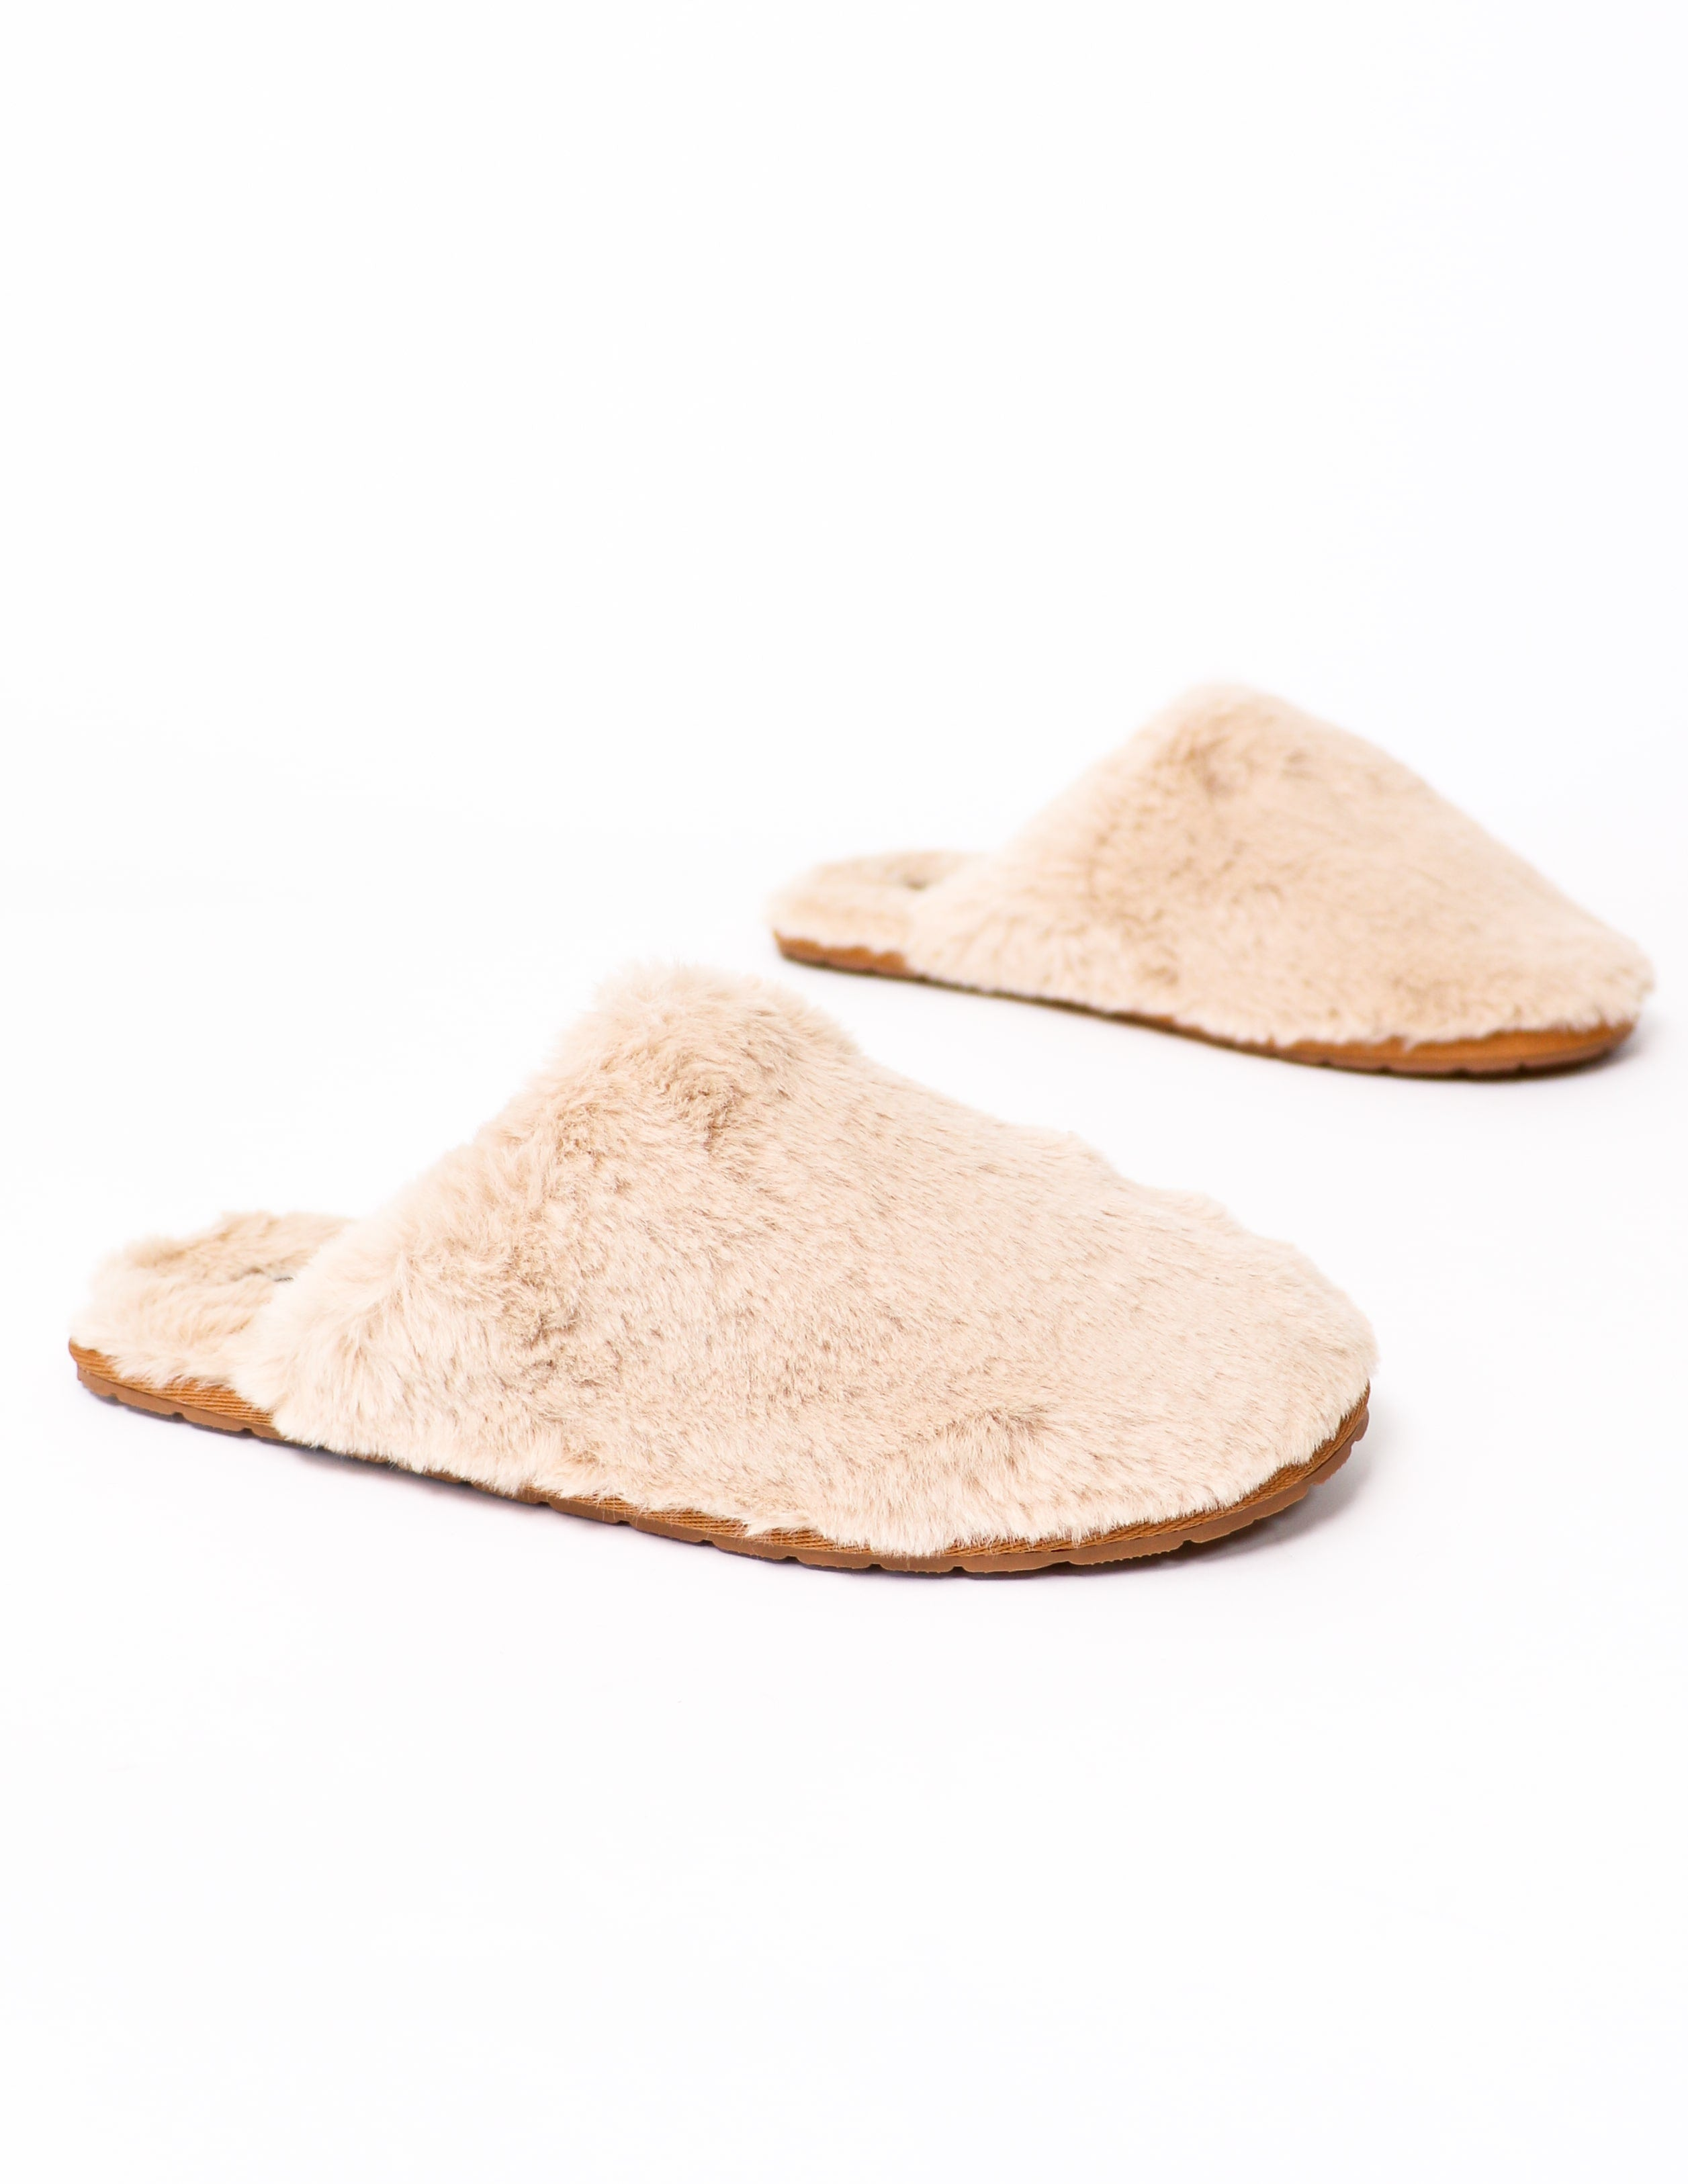 Close up of the natural fuzzy wuzzy slippers on white background